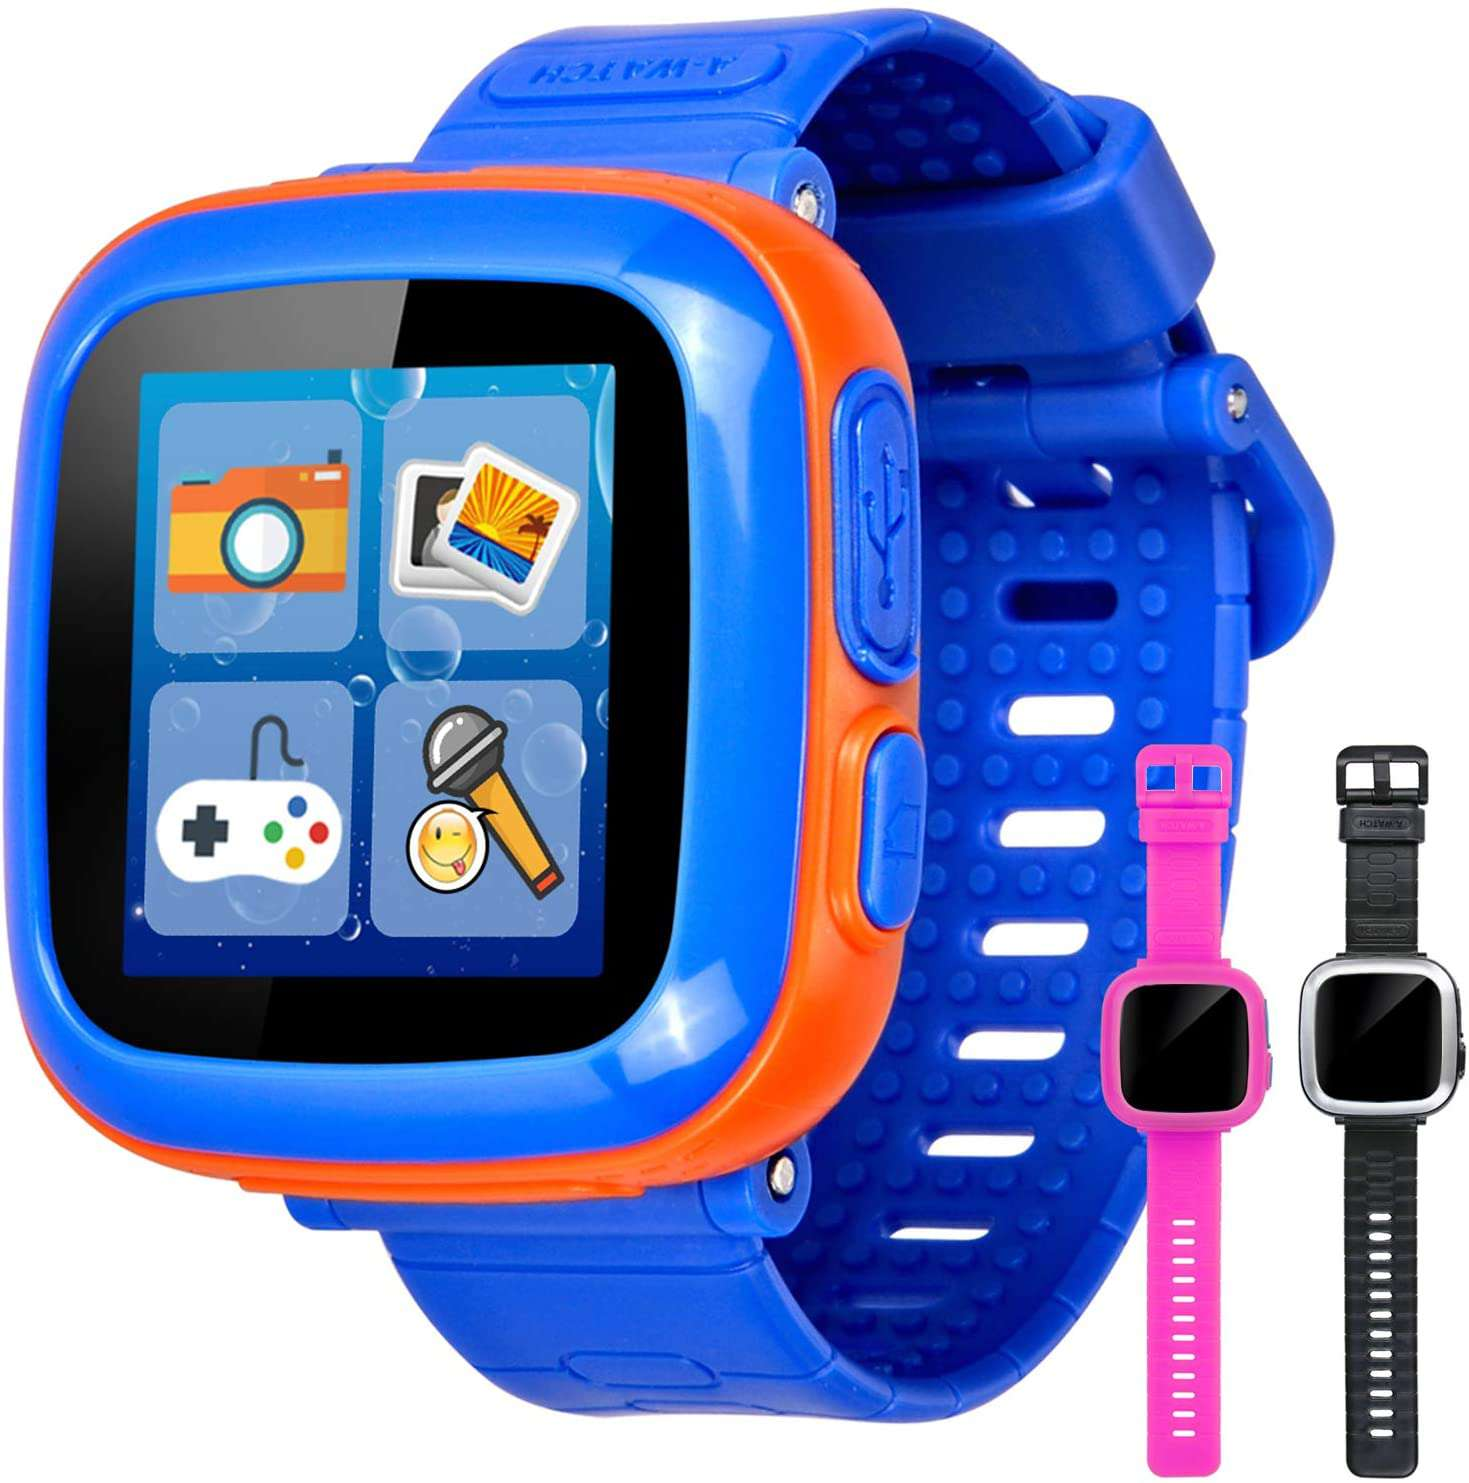 GBD Game Smart Watch for Kids